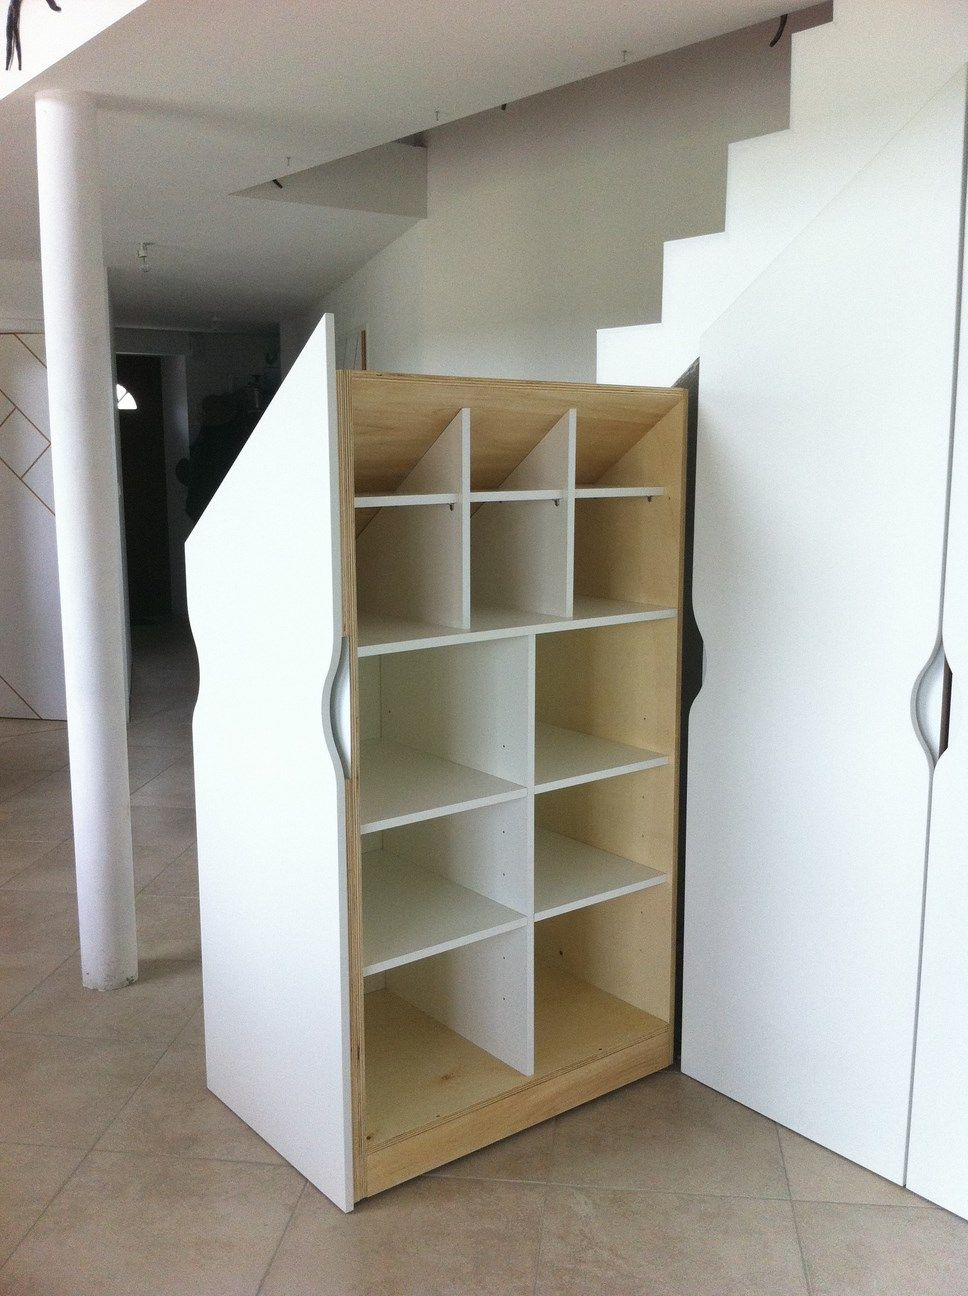 Epingle Sur Wardrobe Design